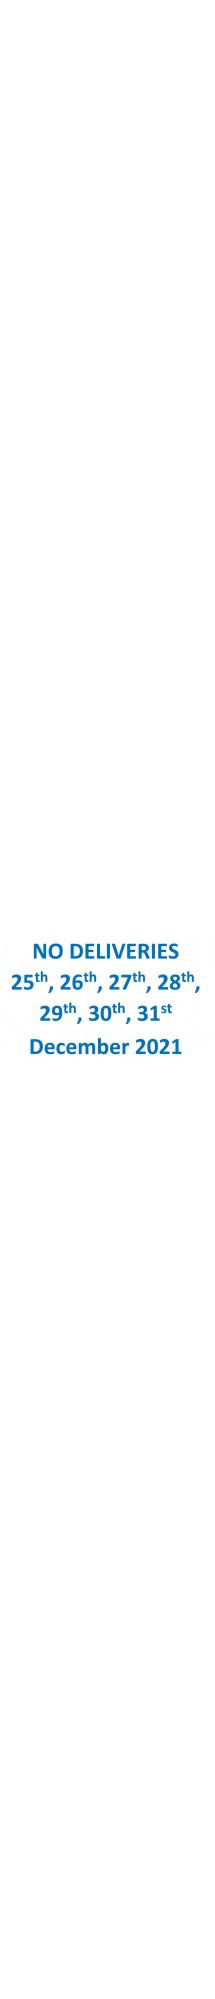 No Deliveries December